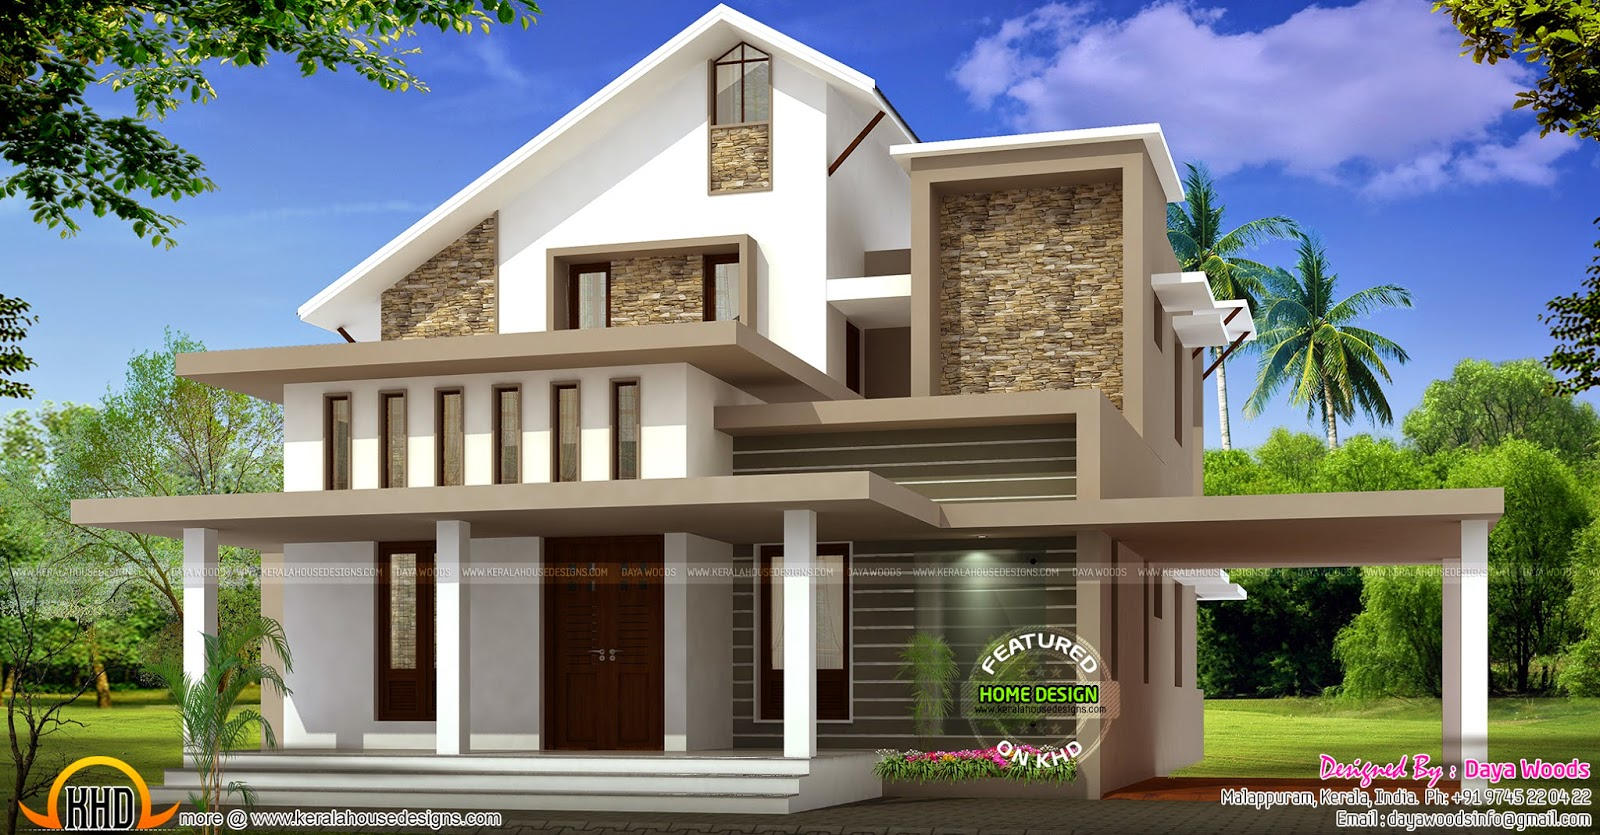 Low budget semi contemporary home kerala home design and for Semi attached house plans